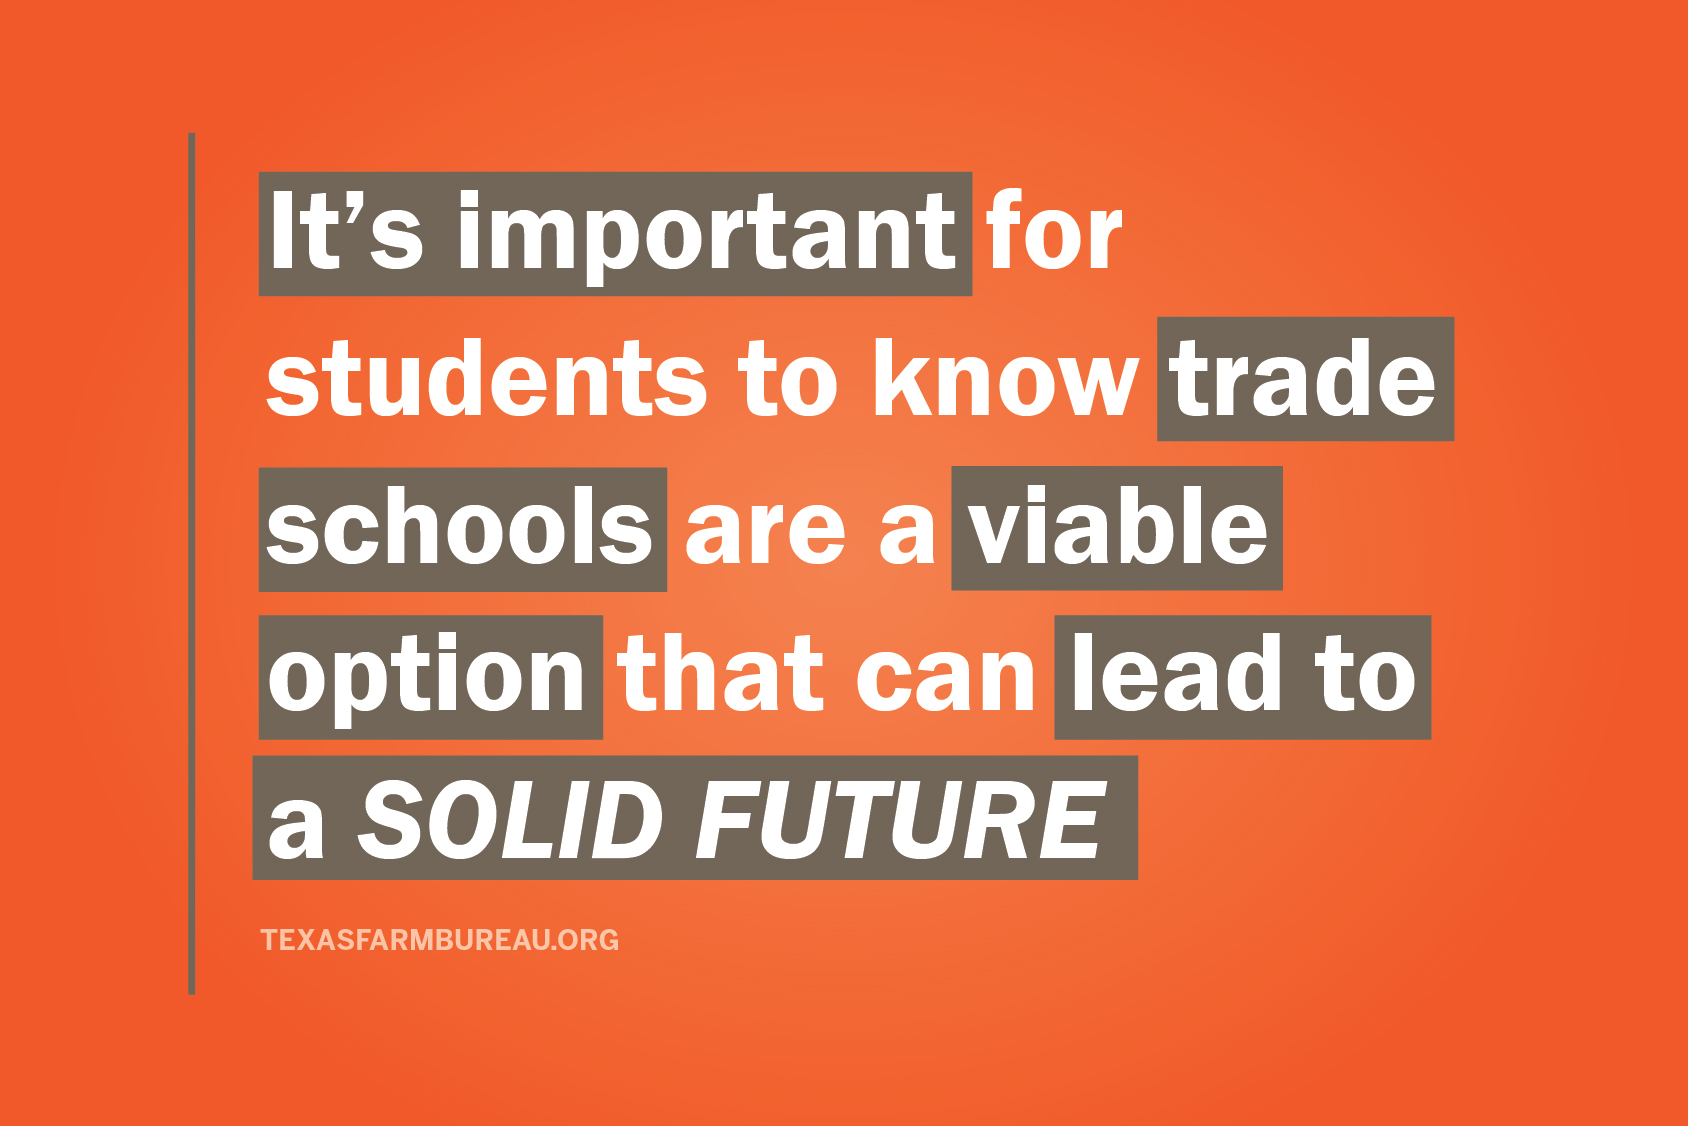 Trade schools specialize in specific areas of skill. And with a certificate or a degree from a trade school, graduates have access to some of today's most in-demand jobs.